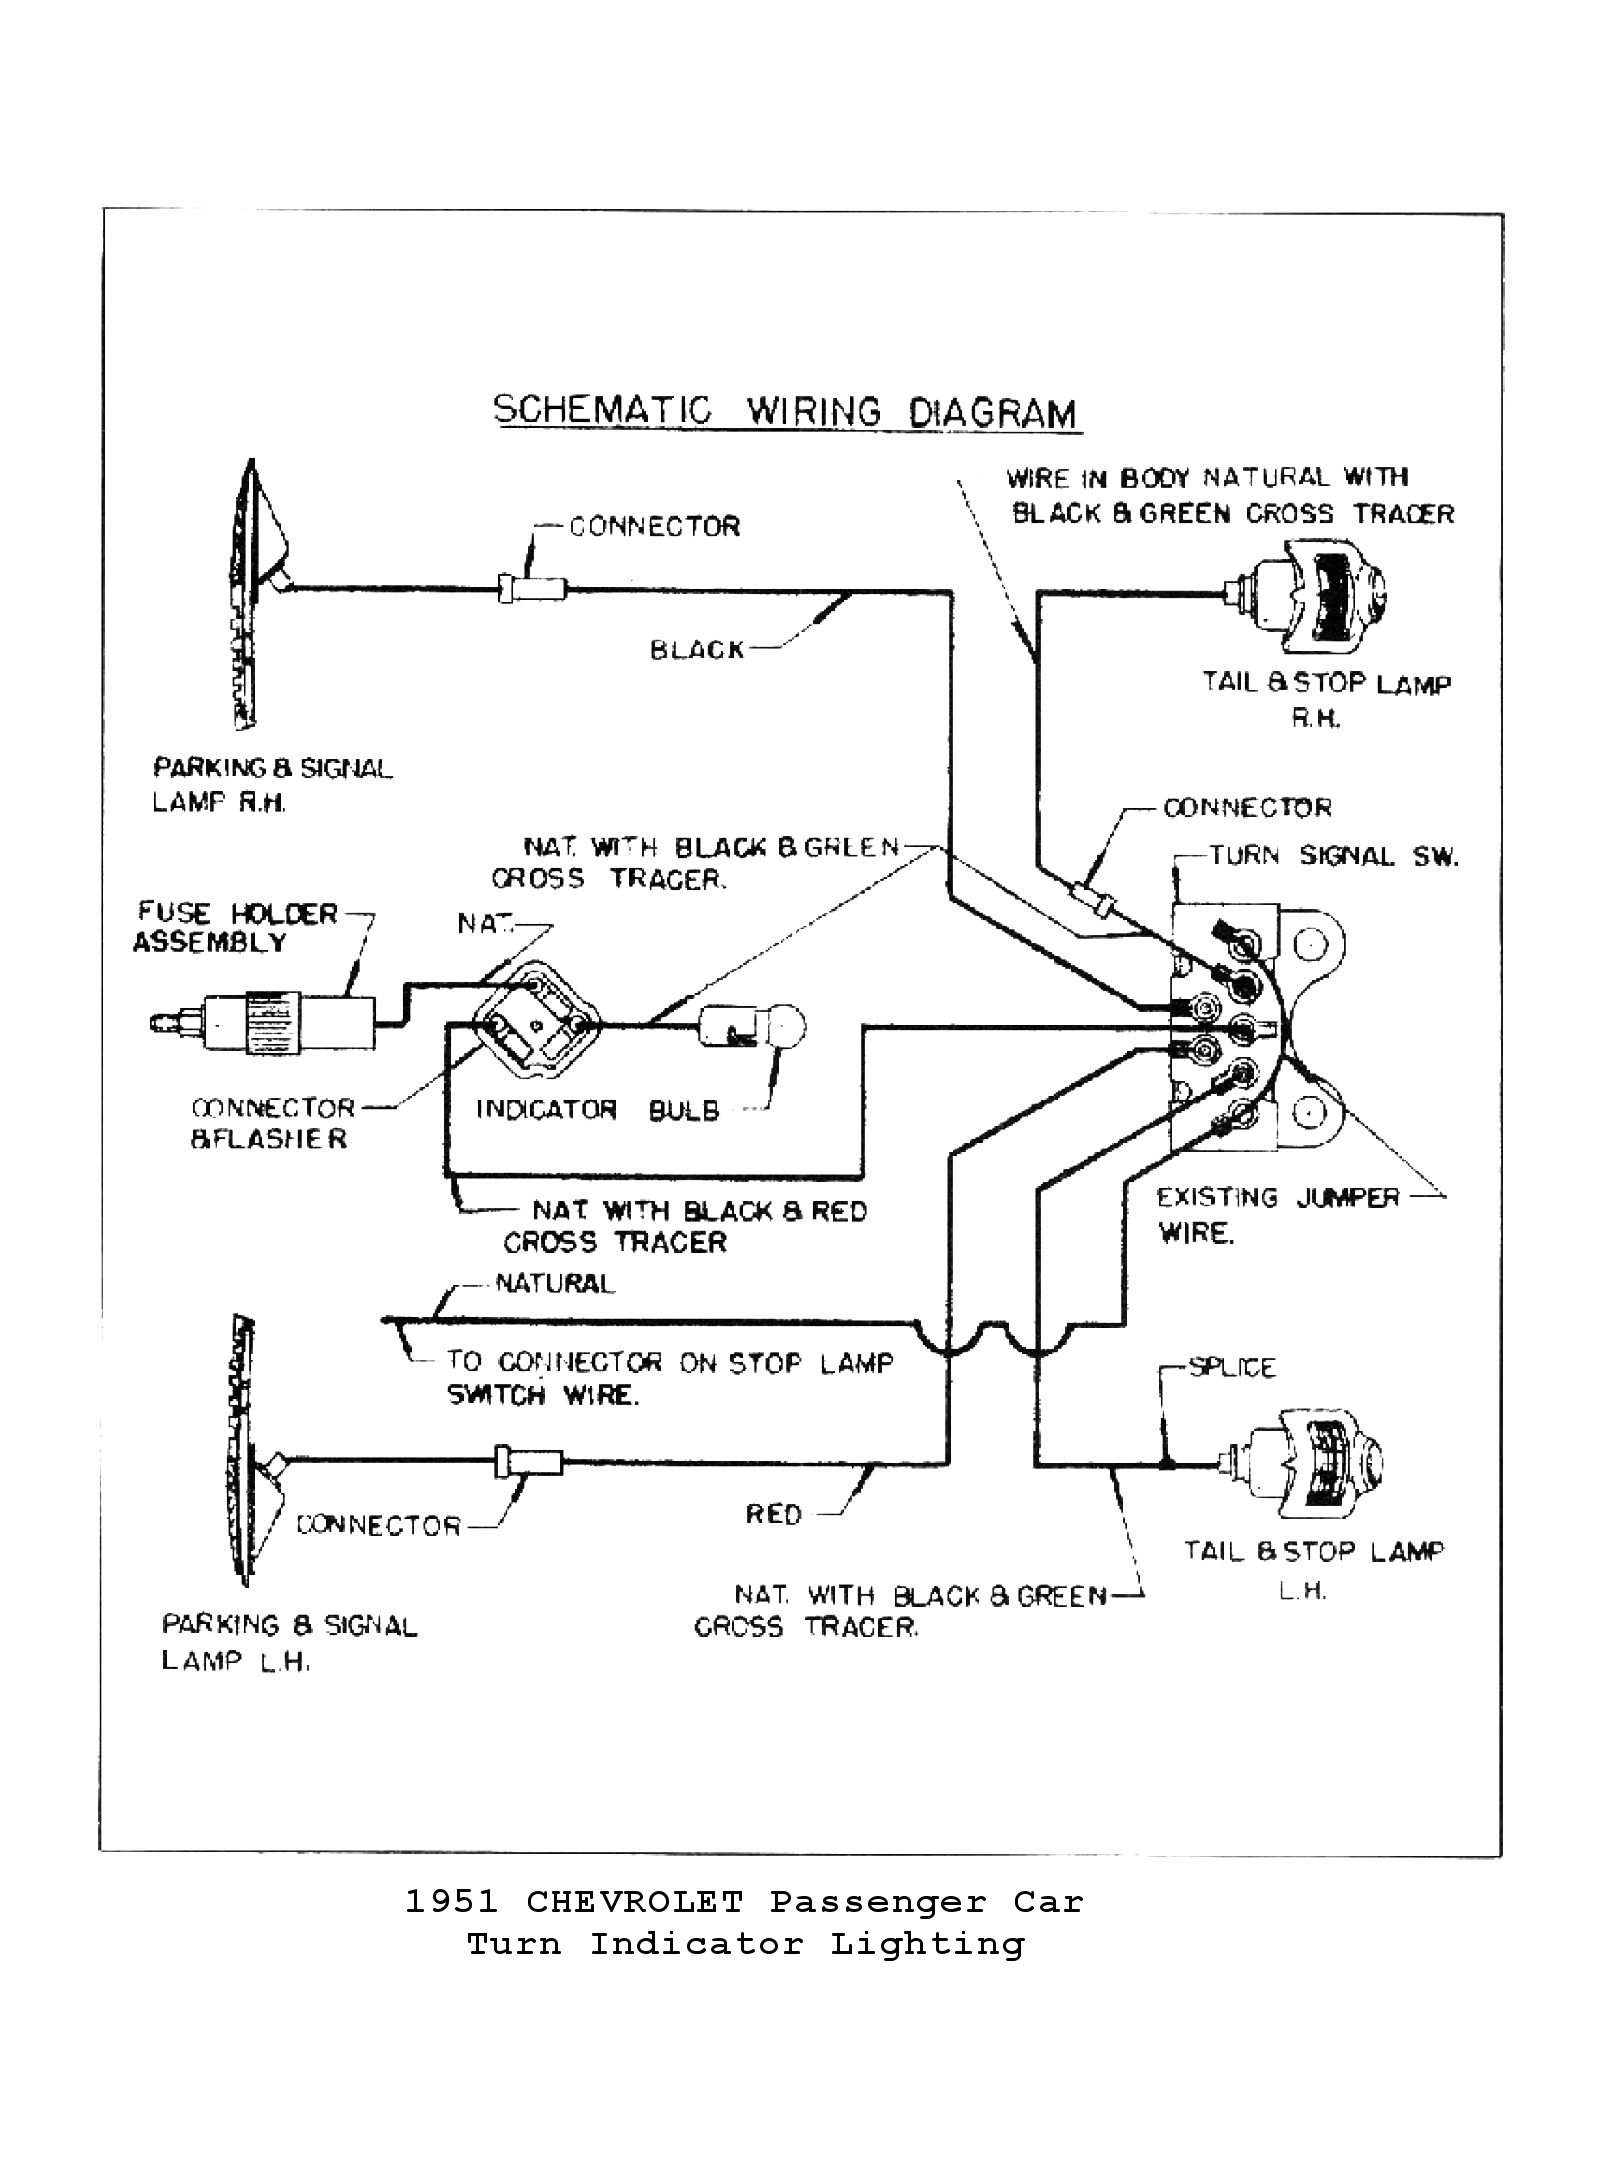 1948 Chevy Truck Wiring Diagram The Portal And Forum Of For A 1985 Pickup Diagrams Rh Oldcarmanualproject Com 1953